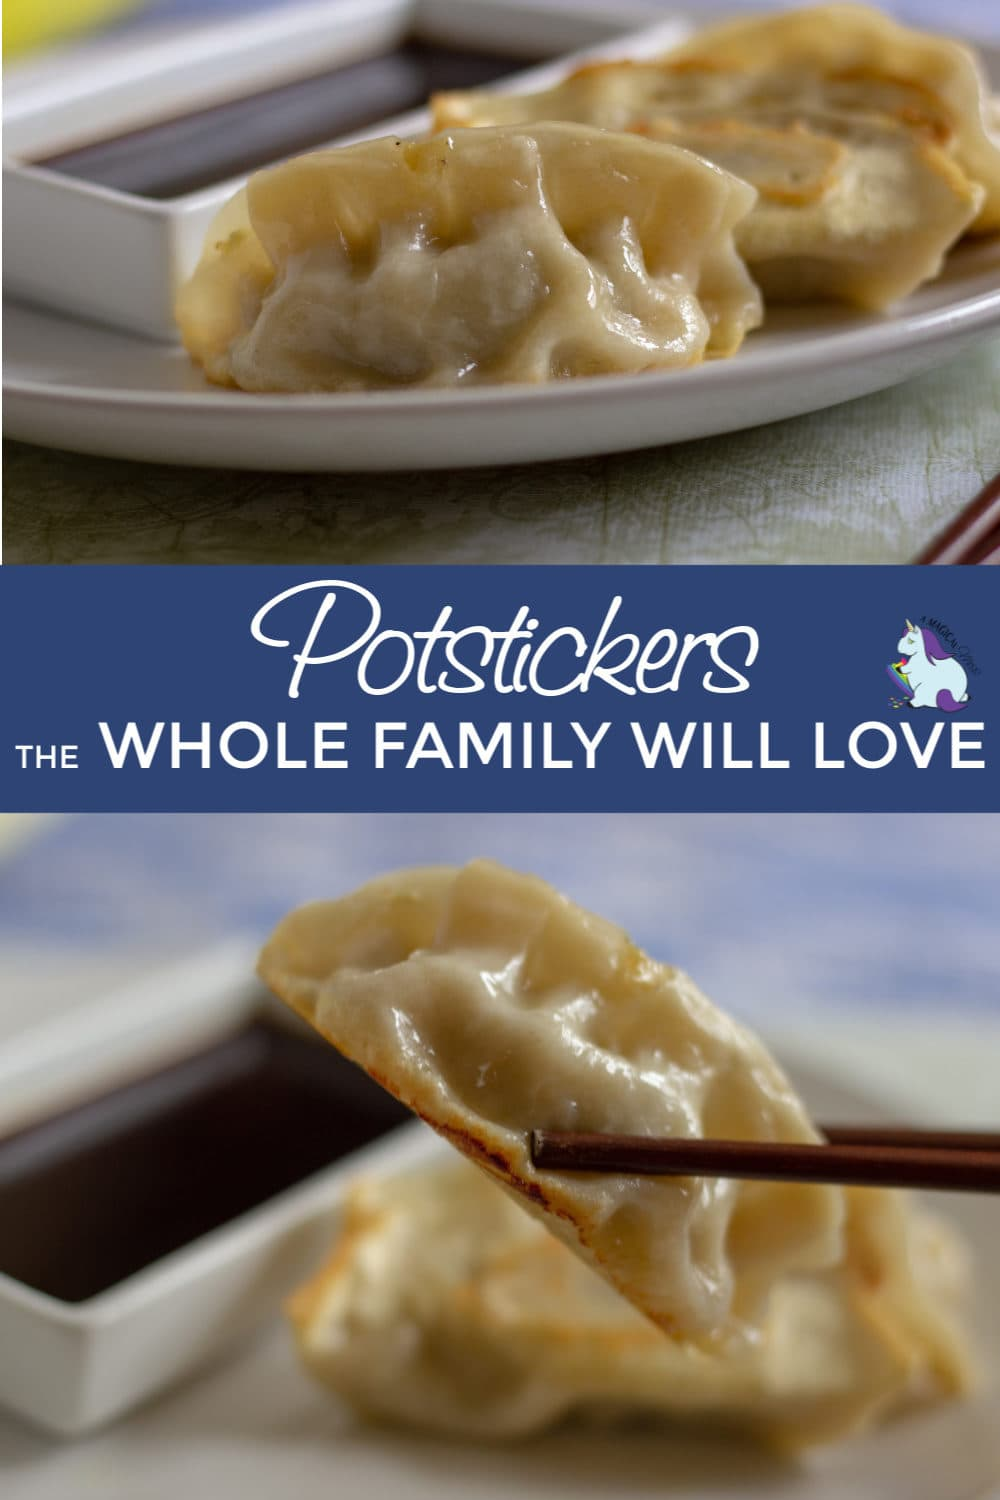 Potstickers the whole family will love